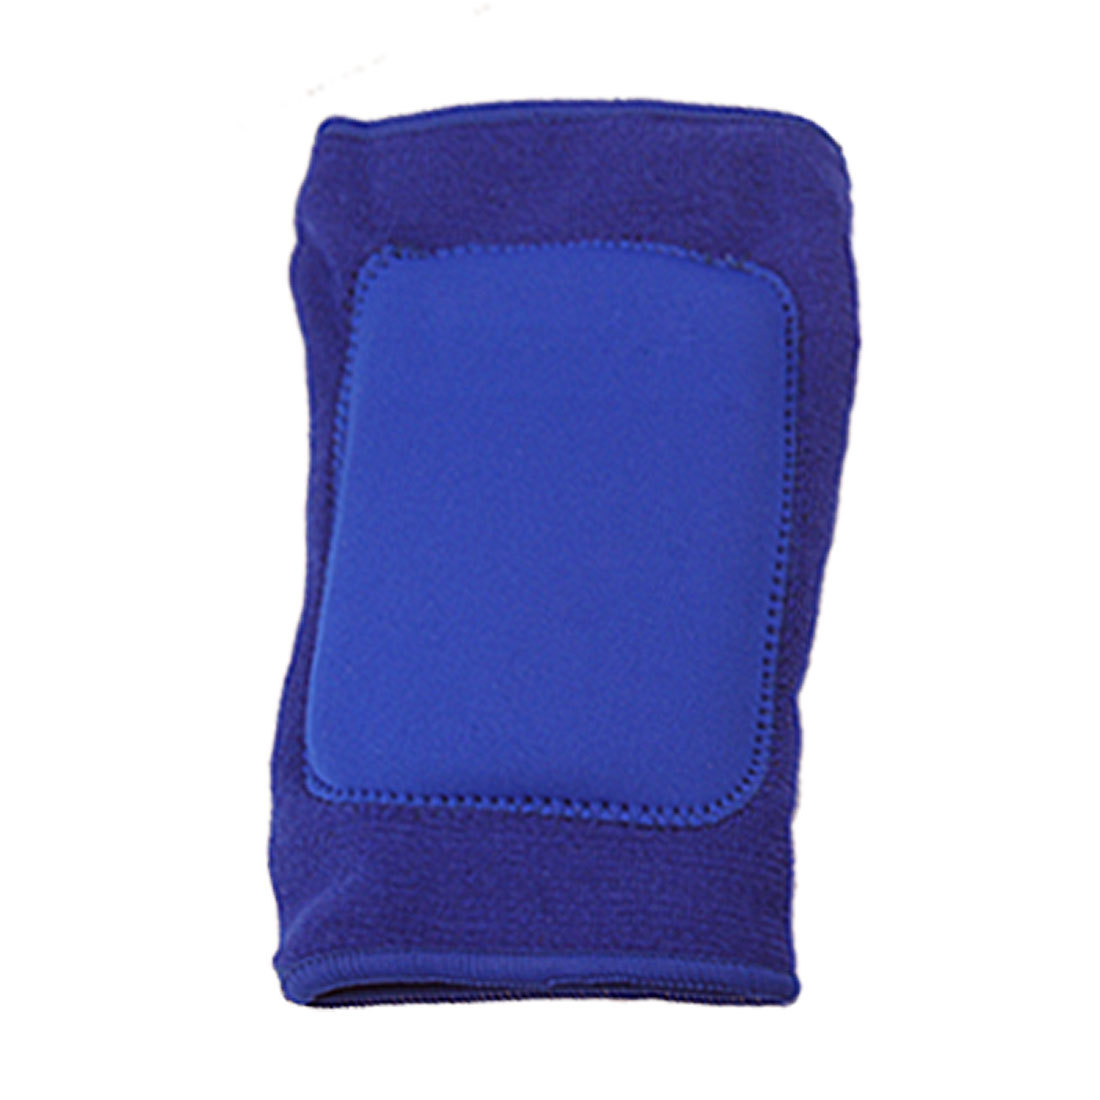 Volleyball Sports Blue Elastic Elbow Support w Sponge Padding